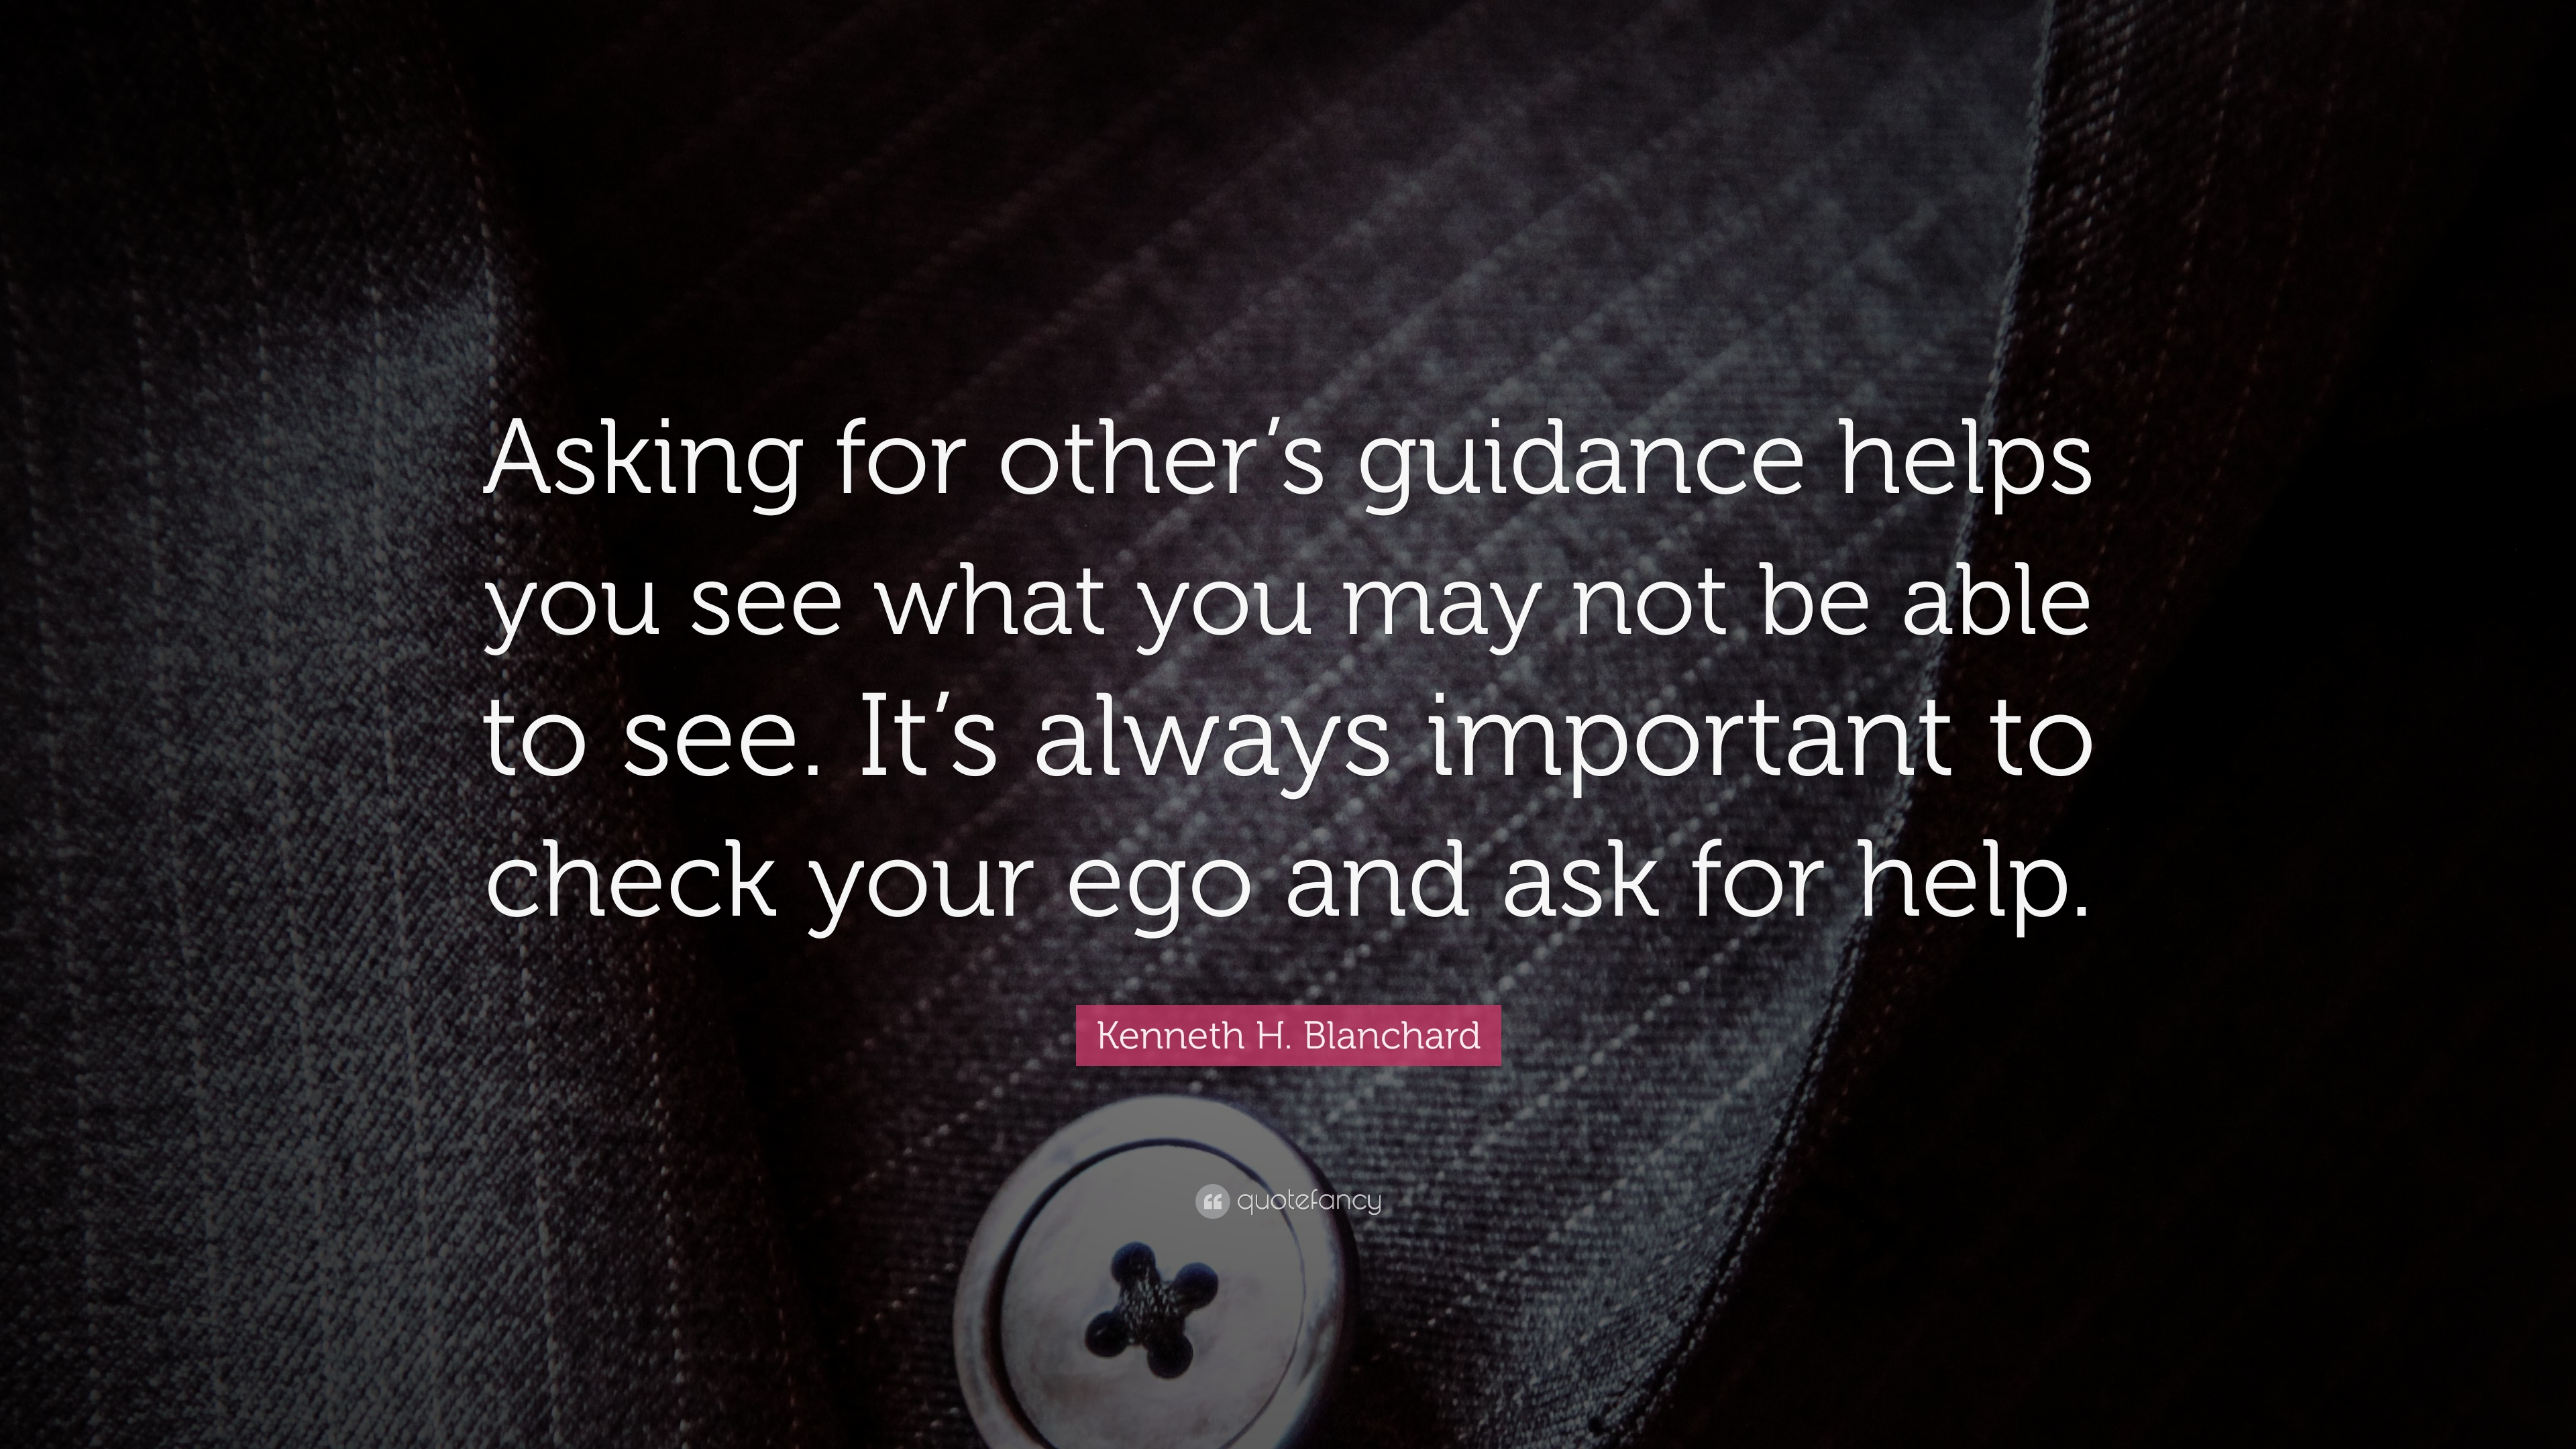 Kenneth H Blanchard Quote Asking For Others Guidance Helps You